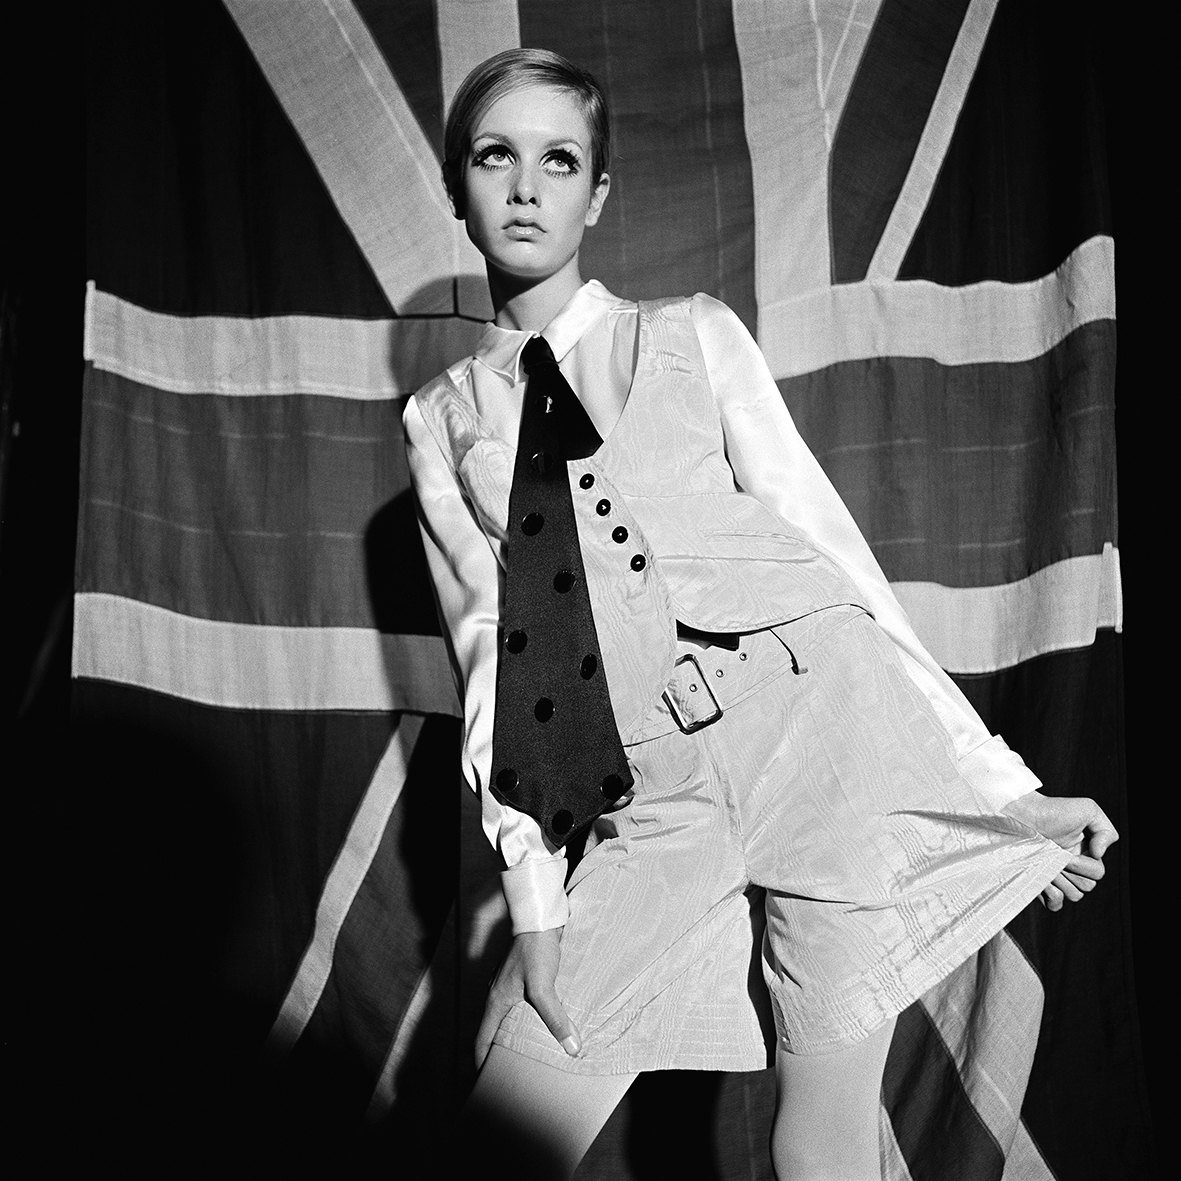 Twiggy in 'Sundae Best' Fashion Feature for Women's Mirror, London, 3rd June 1966 (published 27th August 1966)